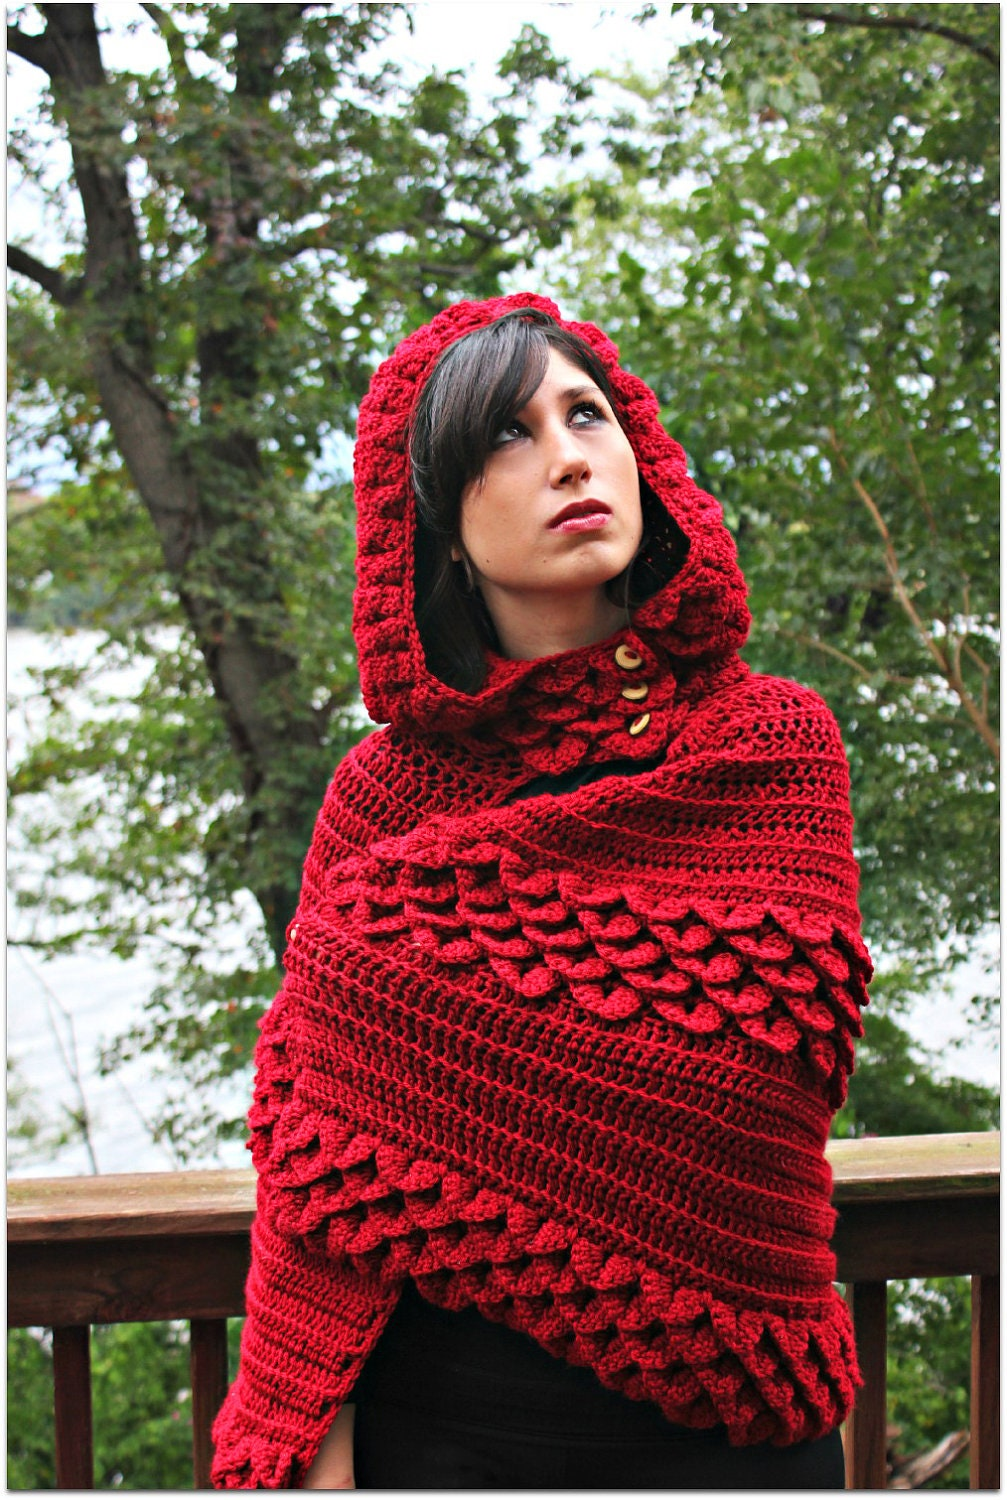 CROCHET PATTERN: Crocodile Stitch Hooded Cape Permission to